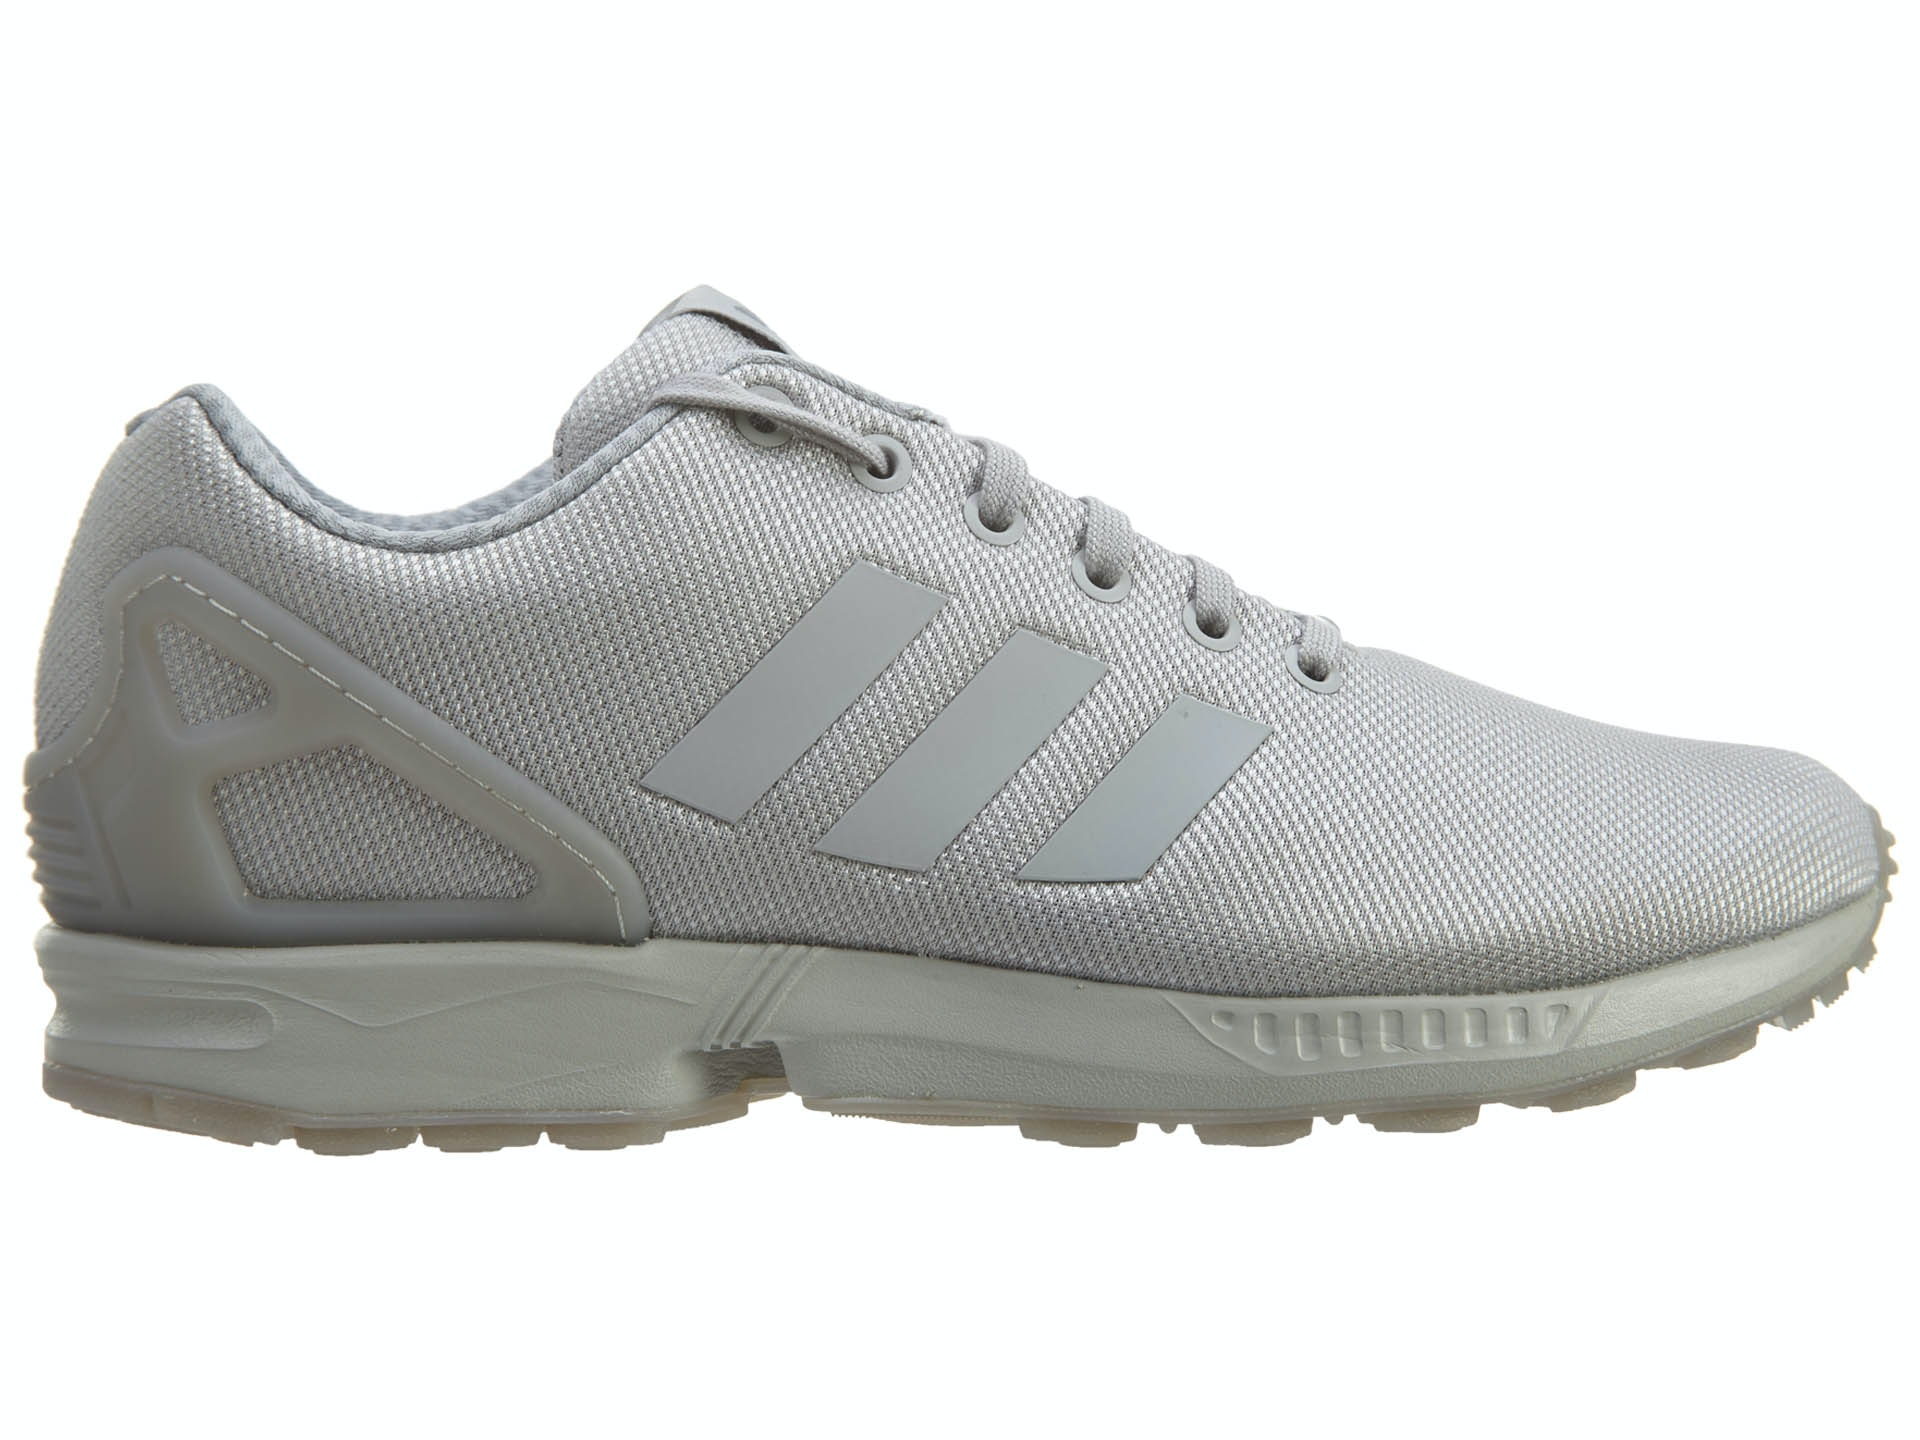 adidas Zx Flux Solid Grey/Solid Grey/Solid Grey